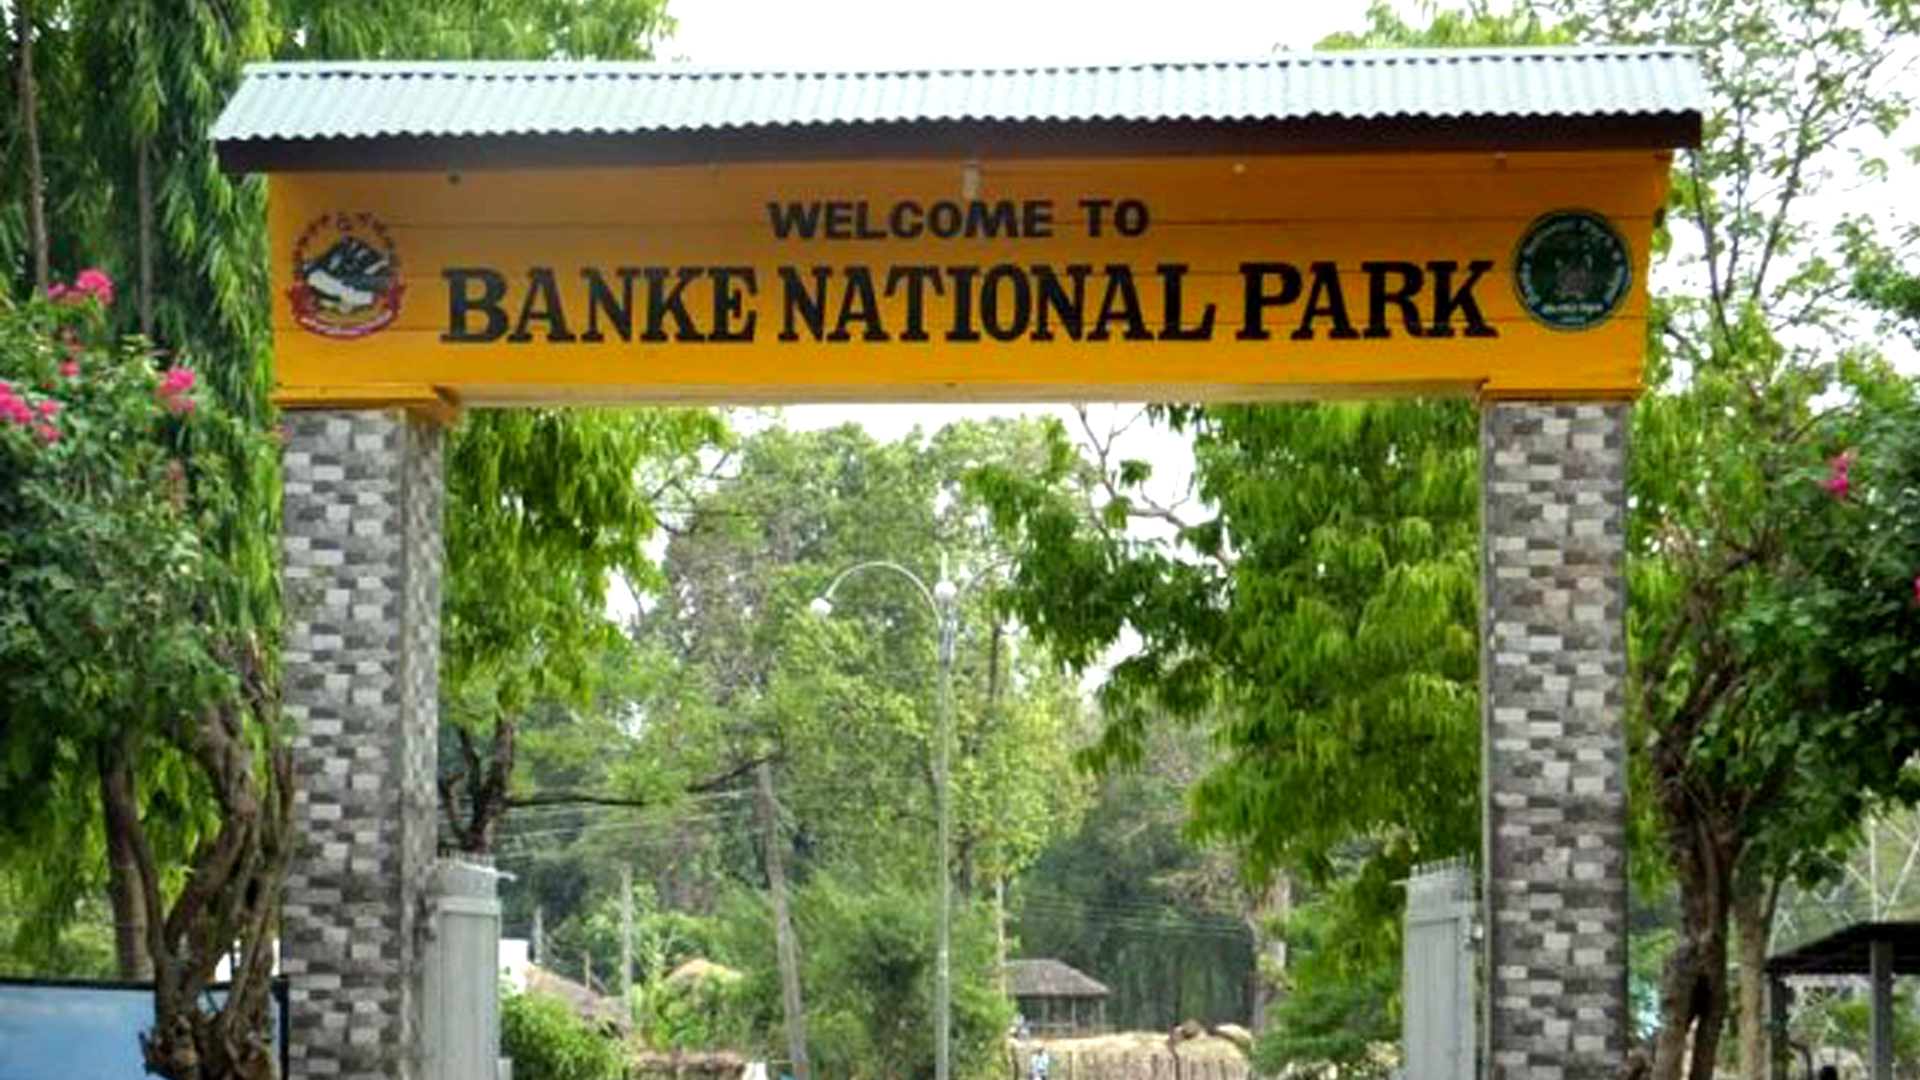 Untimely death of wildlife in Banke National Park on rise